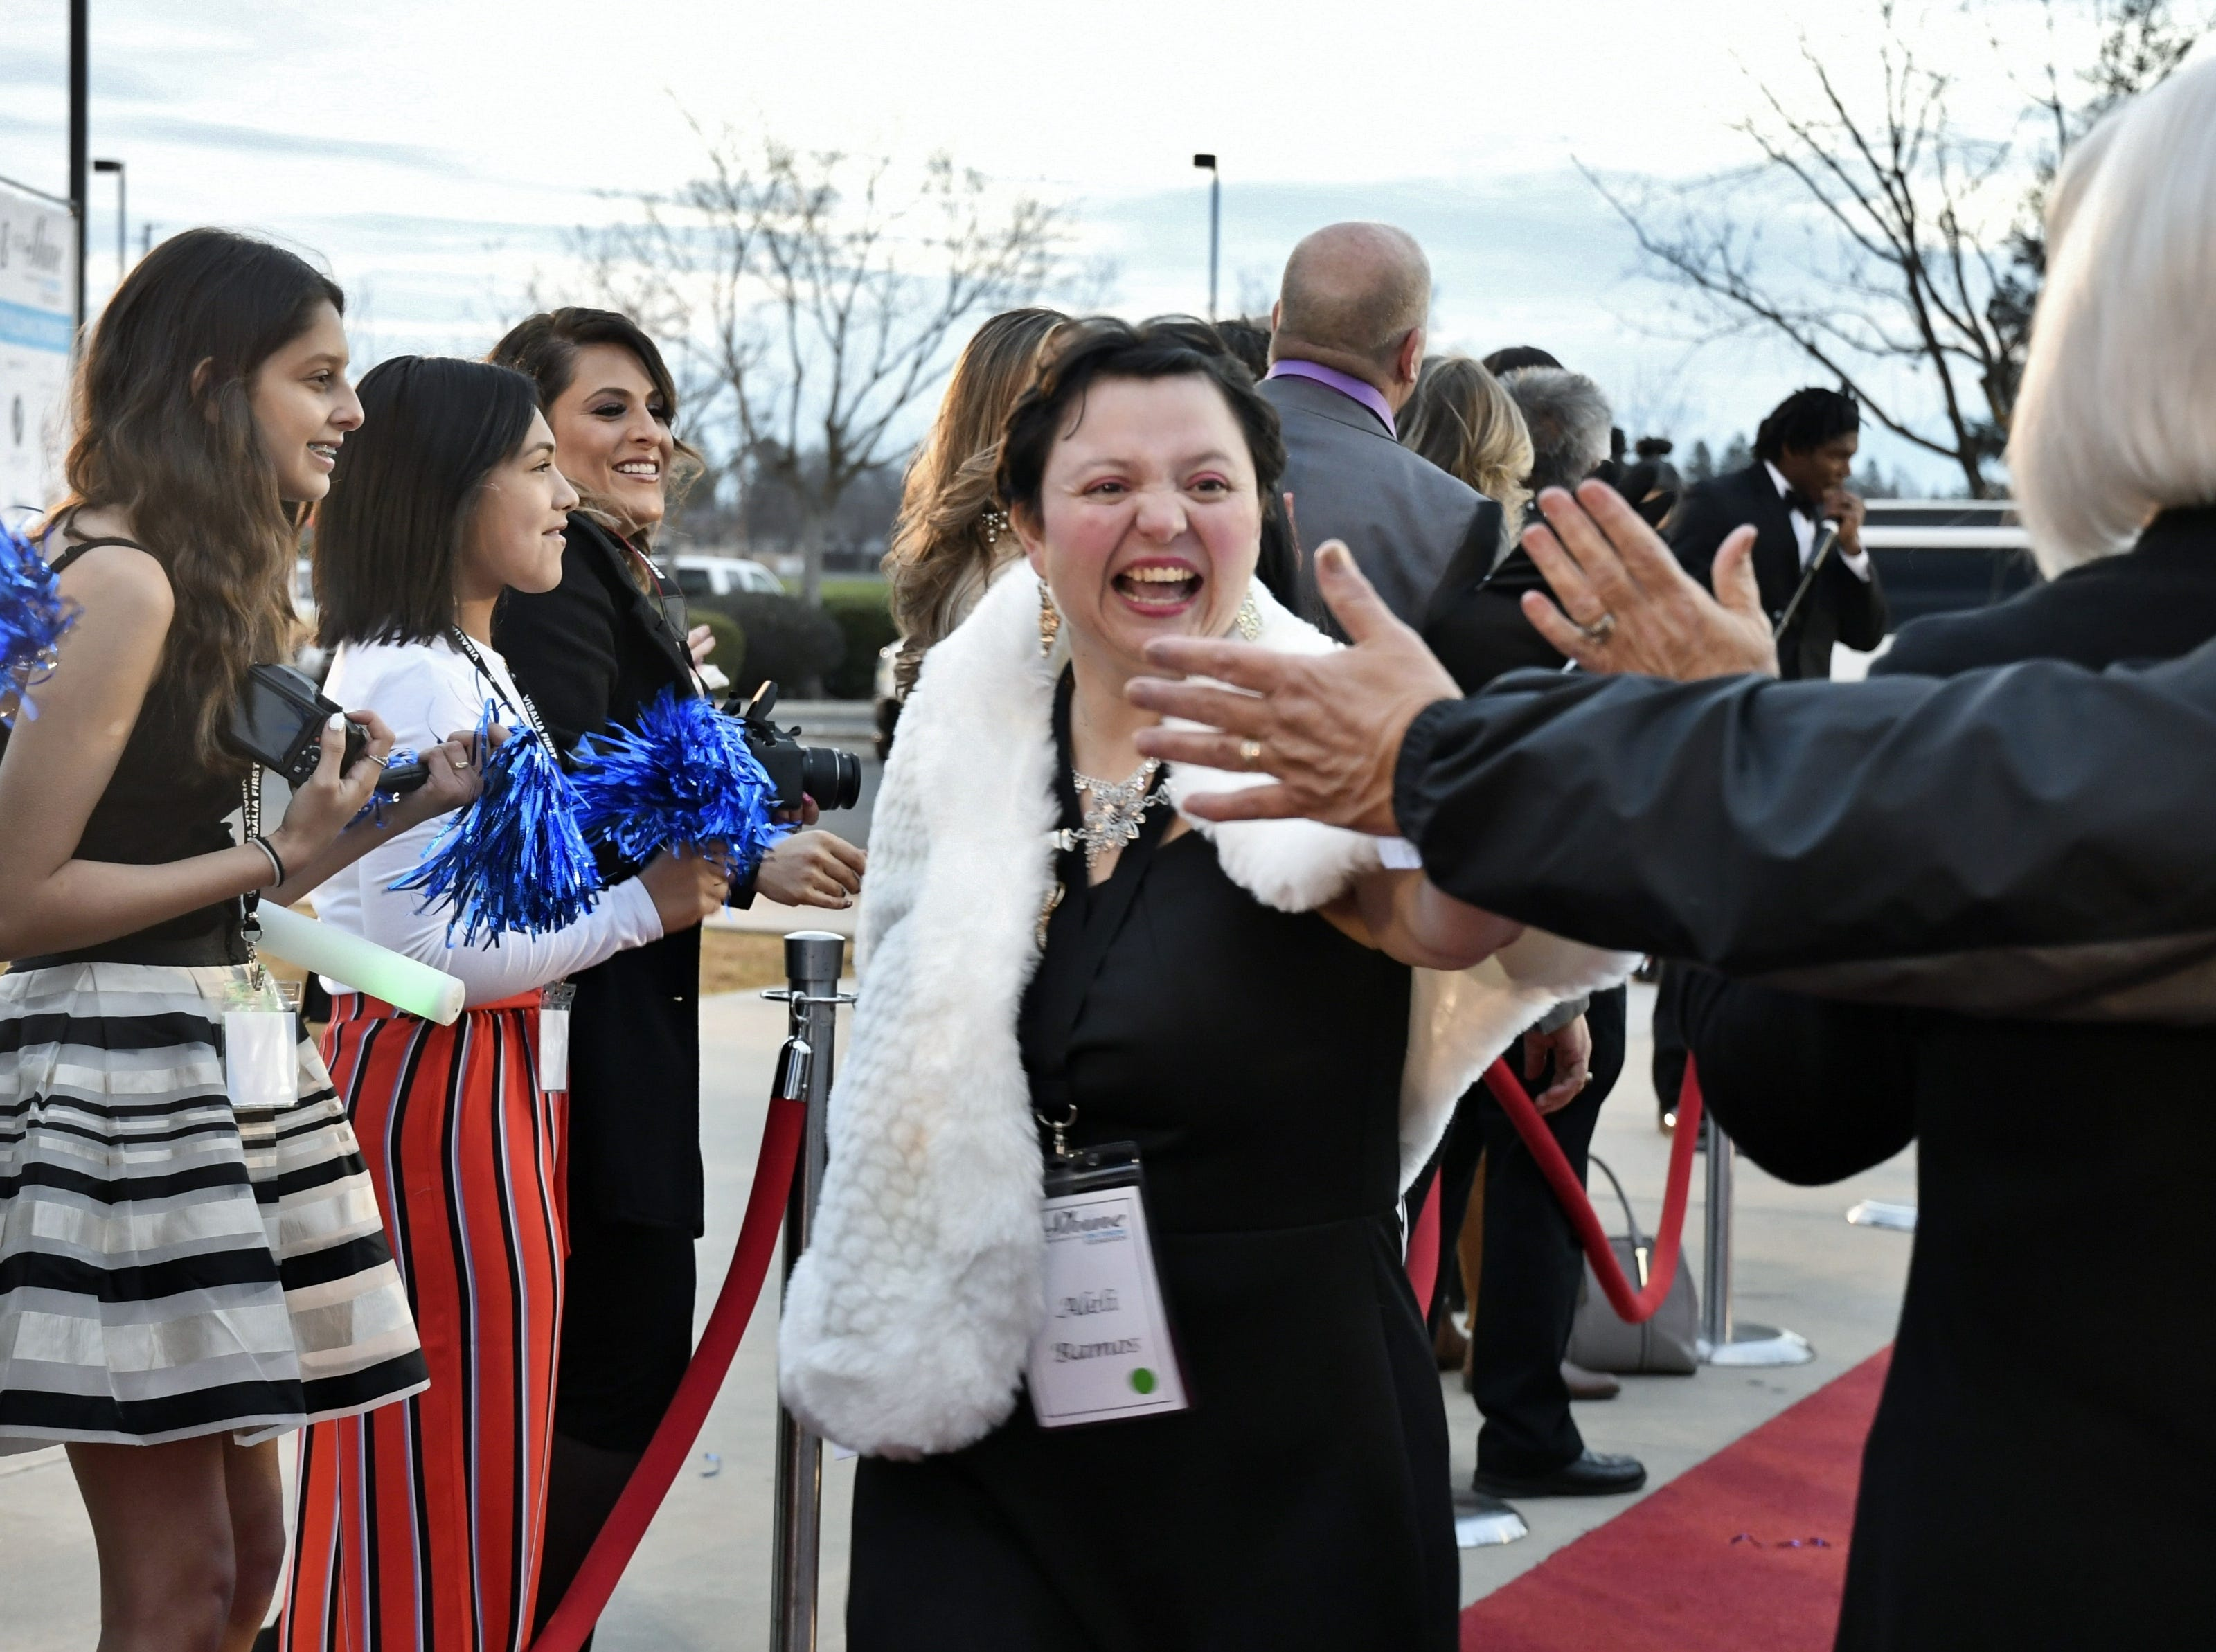 Guests and volunteers dazzle at the Night to Shine Prom event at Visalia First Assembly on Friday, February 8, 2019. The dance, sponsored by the Tim Tebow Foundation, was open to Tulare County residents with special needs and their families. Guests arrived in style in a limousine and walked down a red carpet to the dance. The night included dinner, hair and makeup stations, prom favors, karaoke, dancing and the crowing of each guest as prom king or queen.